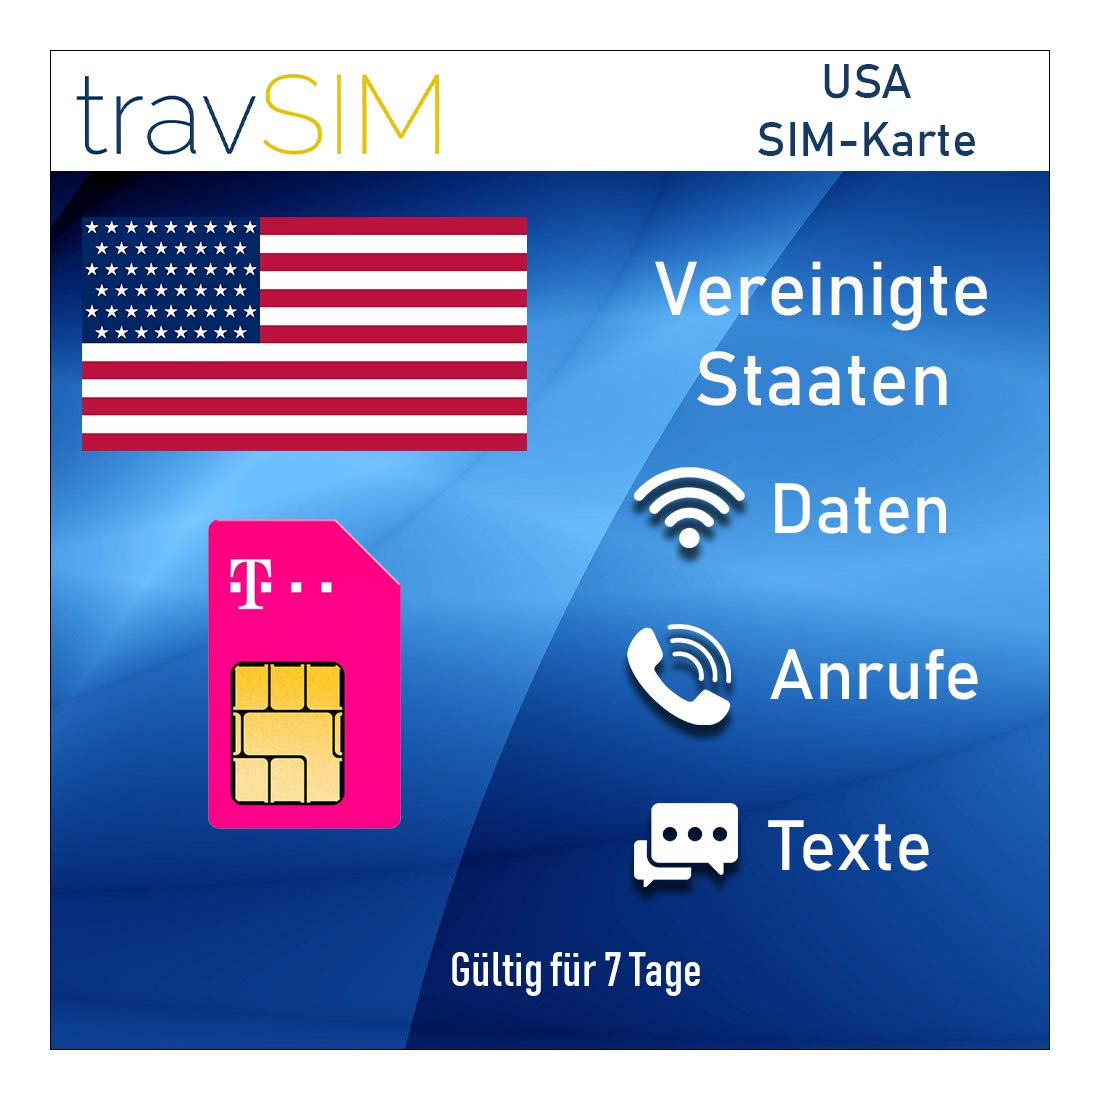 Prepaid Karte Internet.Travsim Prepaid Sim Card Usa T Mobile 50 Gb Mobile Internet